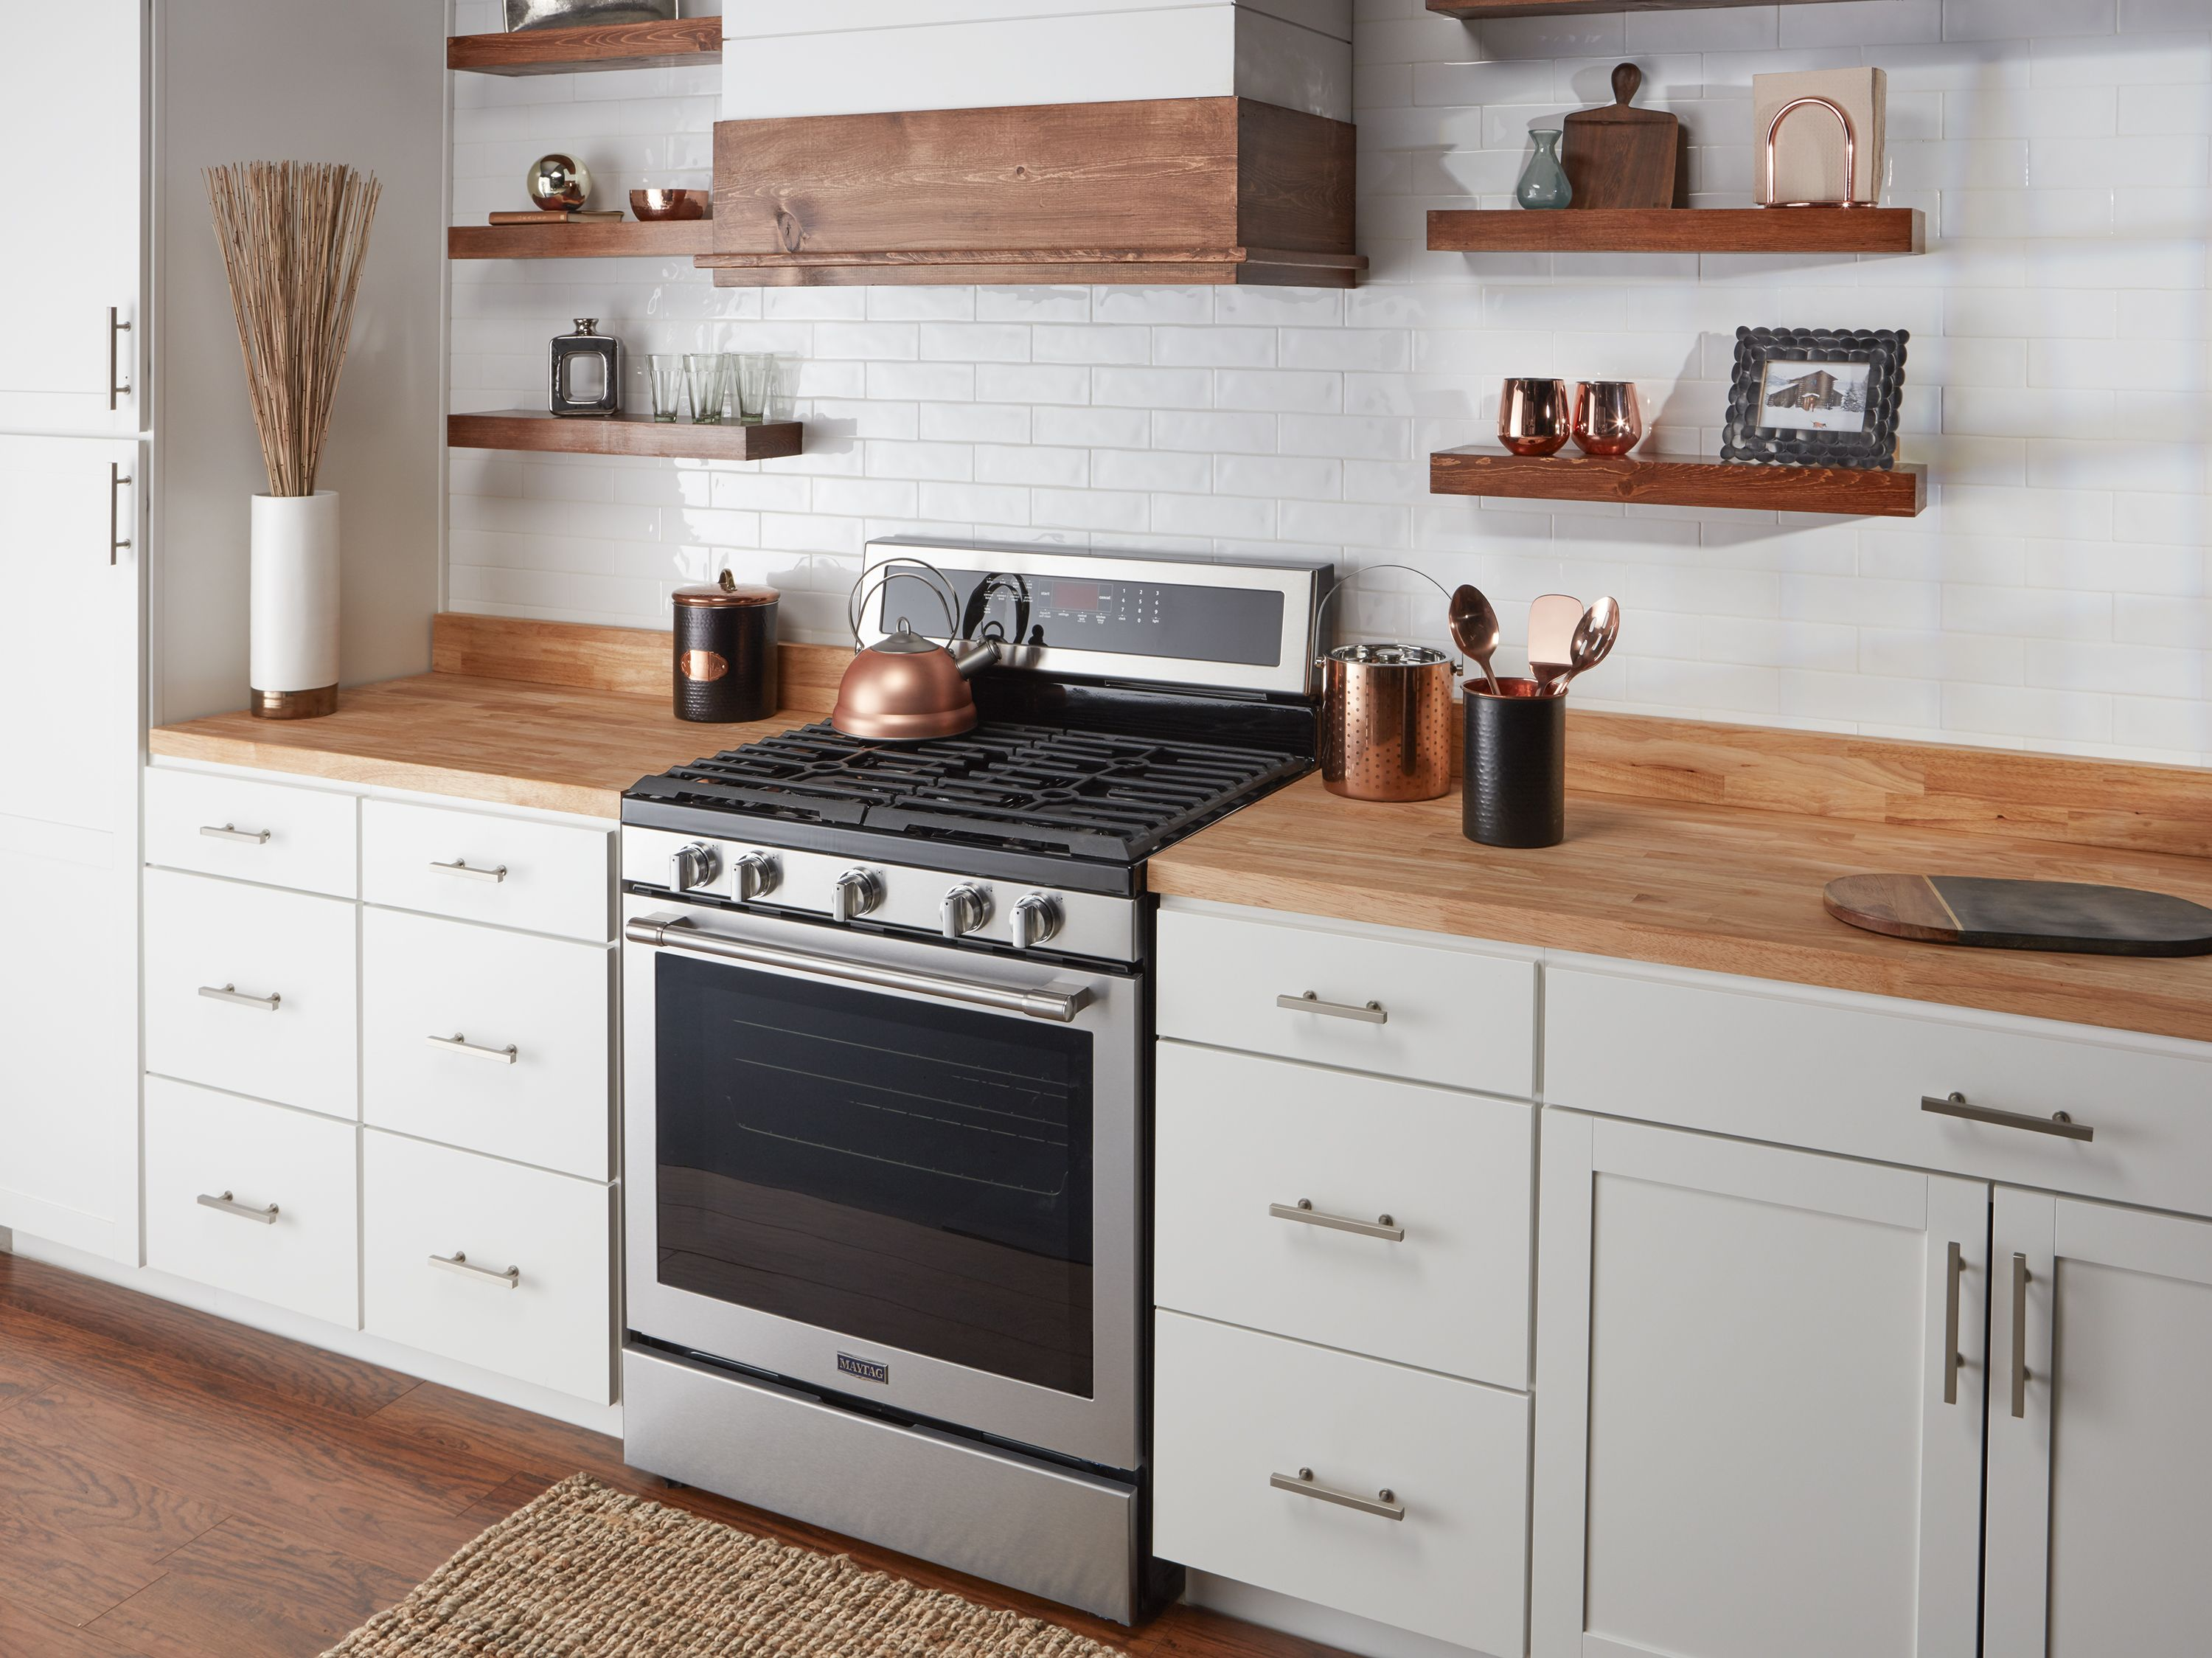 Pin By Vt Industries On Vt Centerpointe Butcher Block Countertops